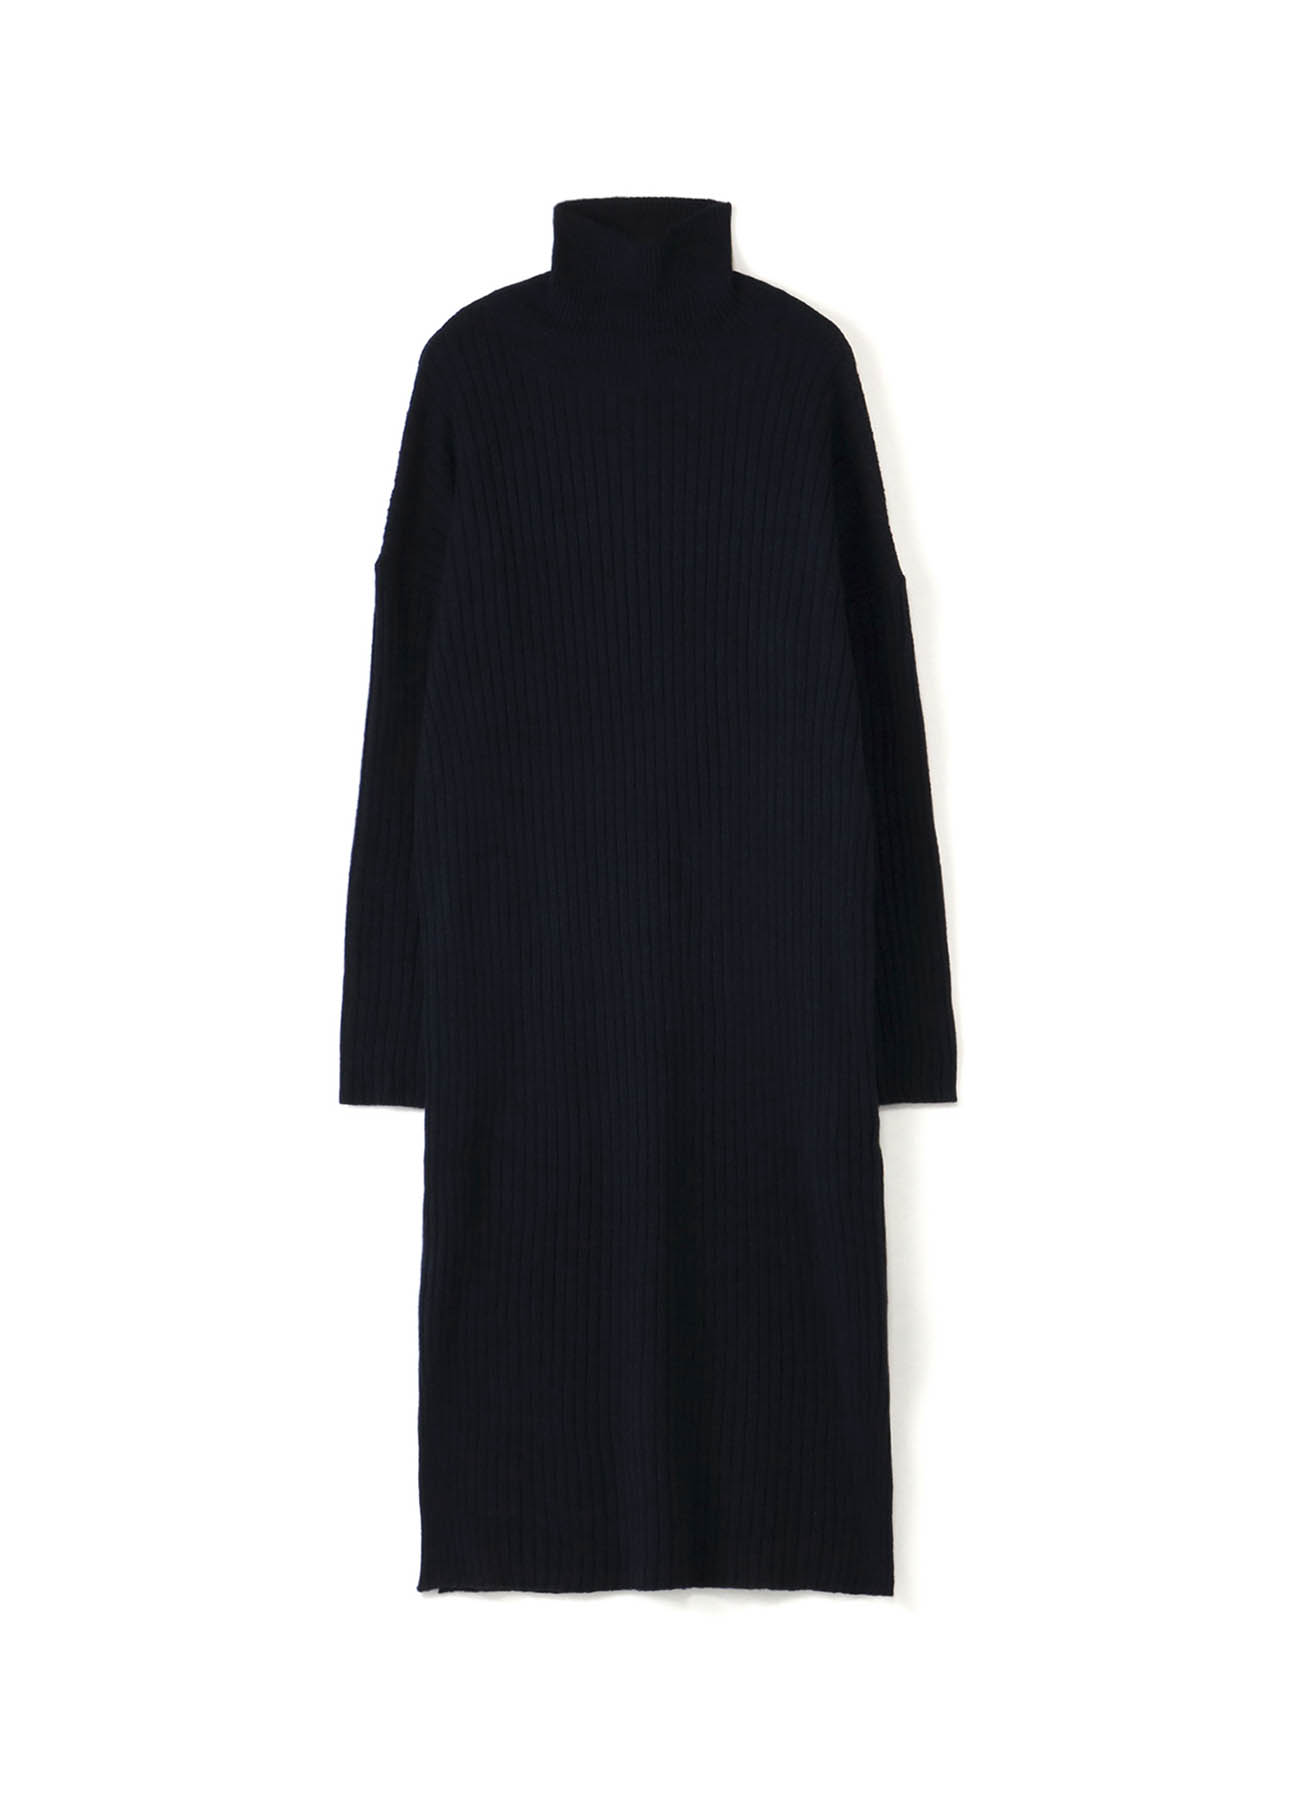 WOOL NYLON RIB DROP SHOULDER DRESS